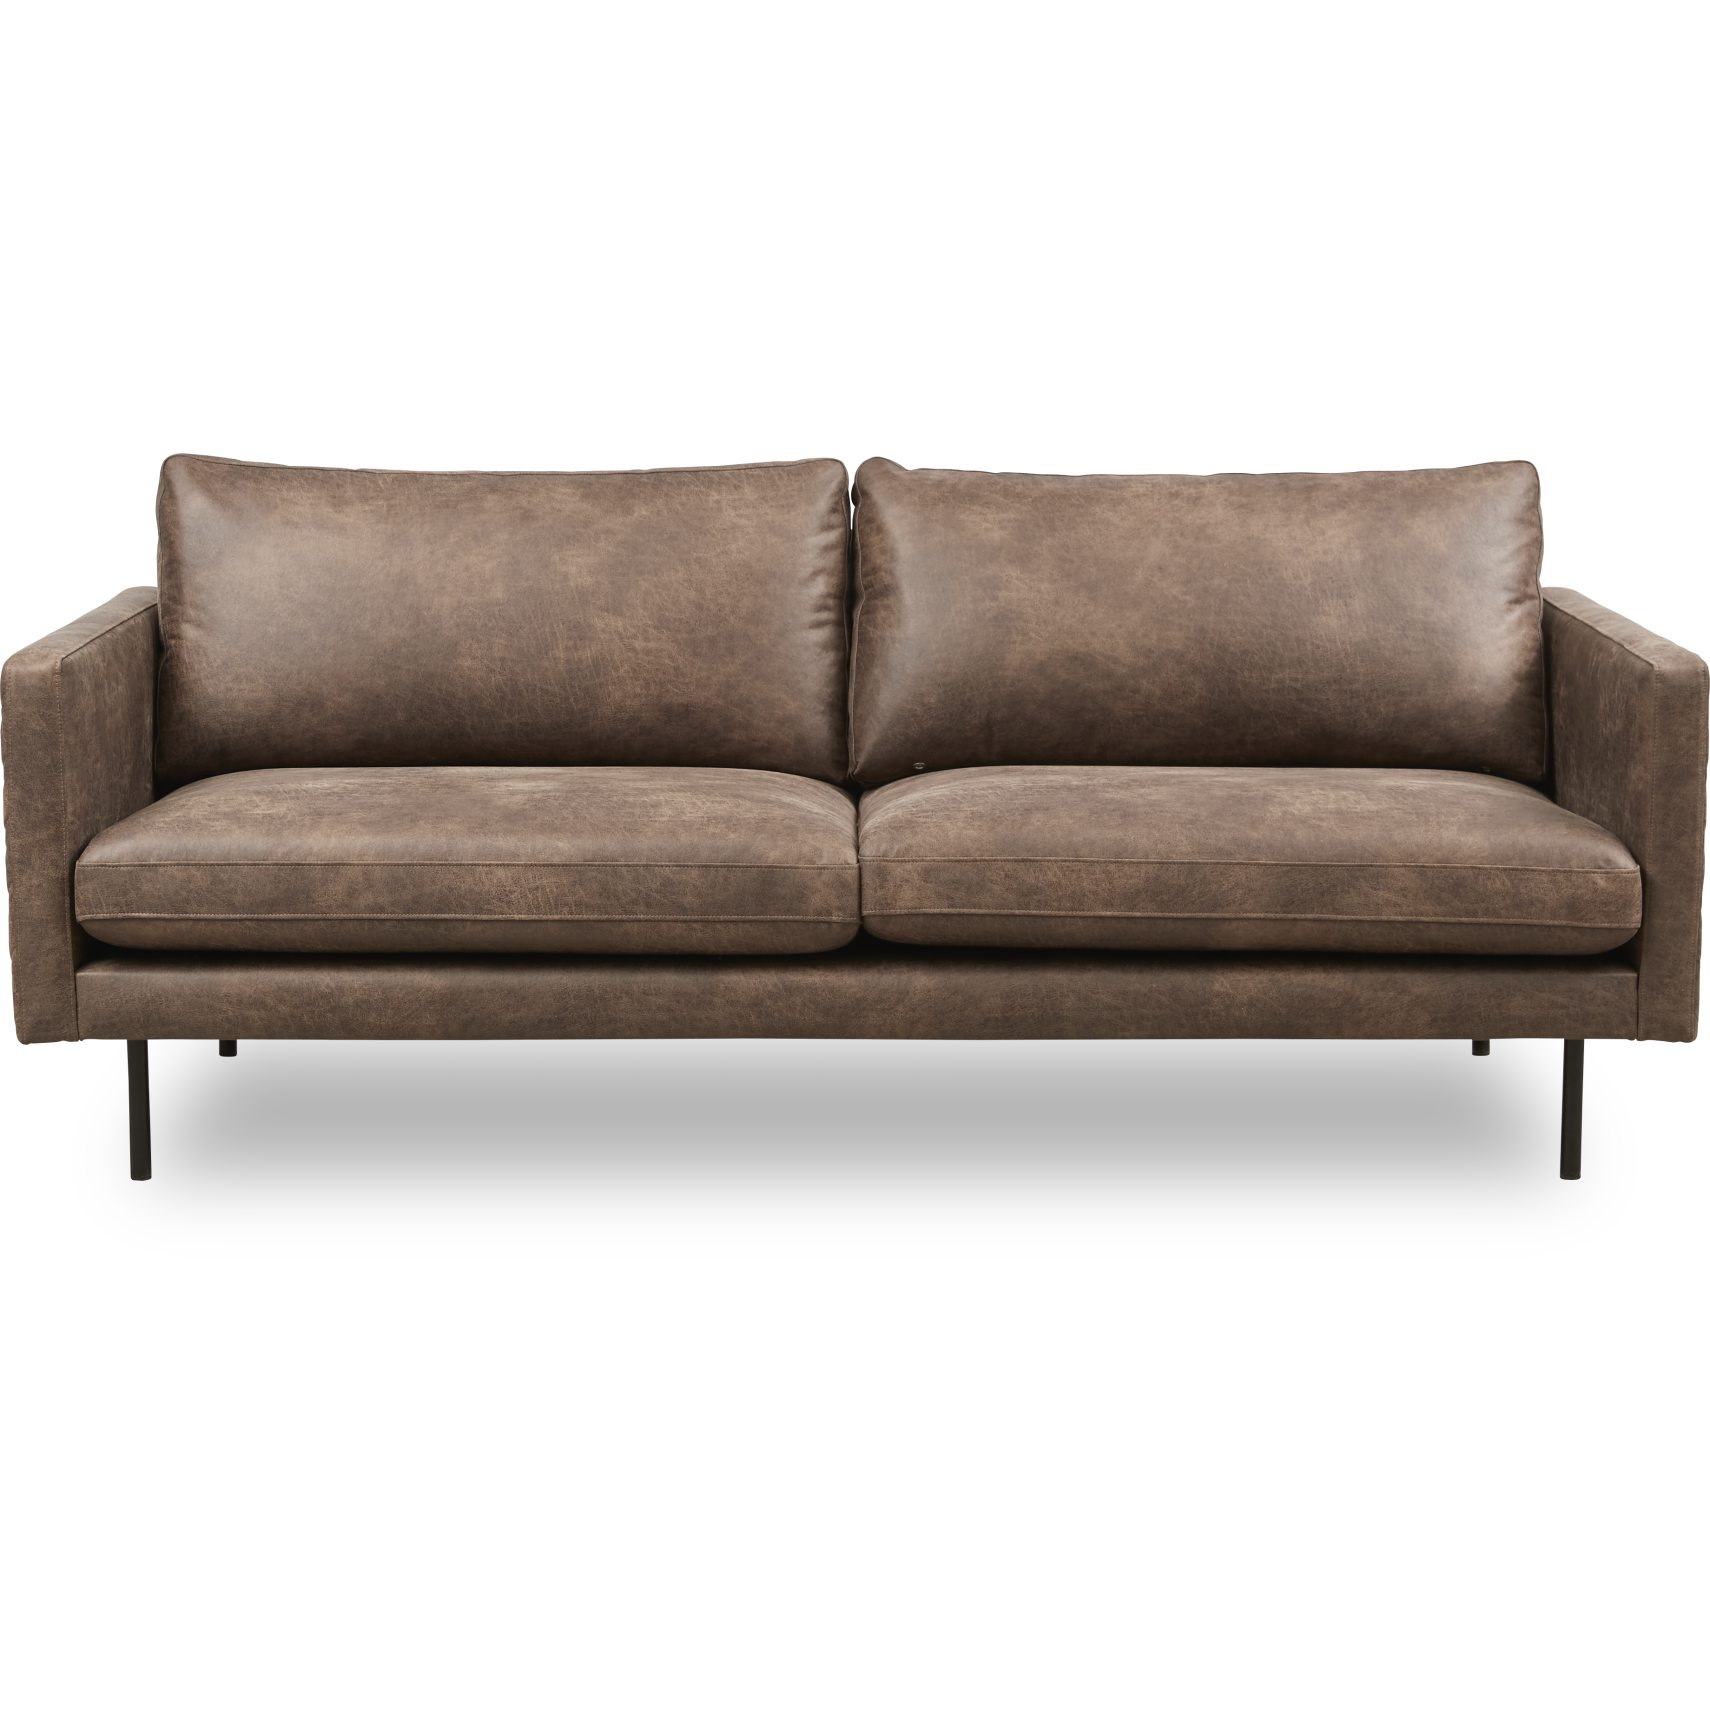 Sicilia 3 pers Sofa - Colorado 4 Brown bonded læder og ben i sort metal